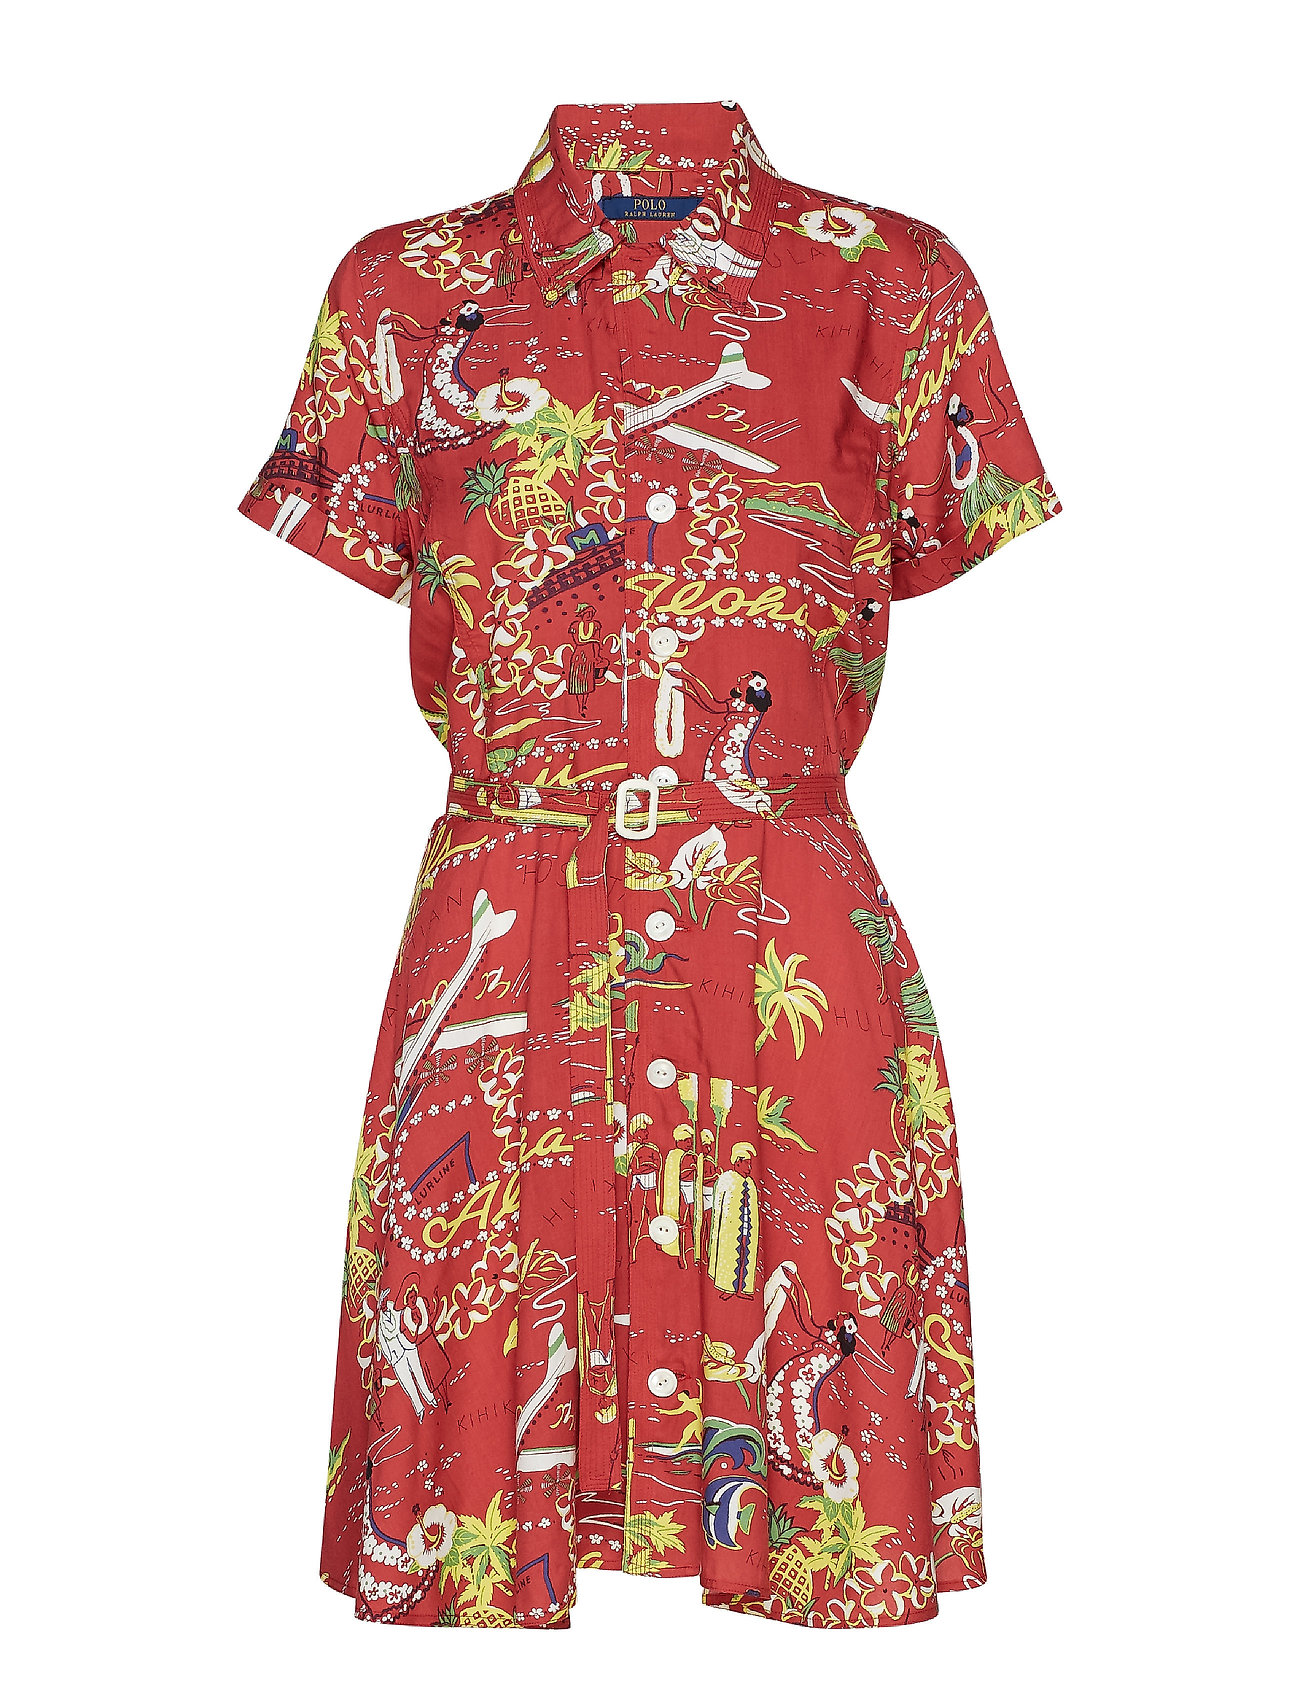 Flare Tropical Fit Dress Flare Tropical Fit And Fit And Dress Tropical Qrdhts